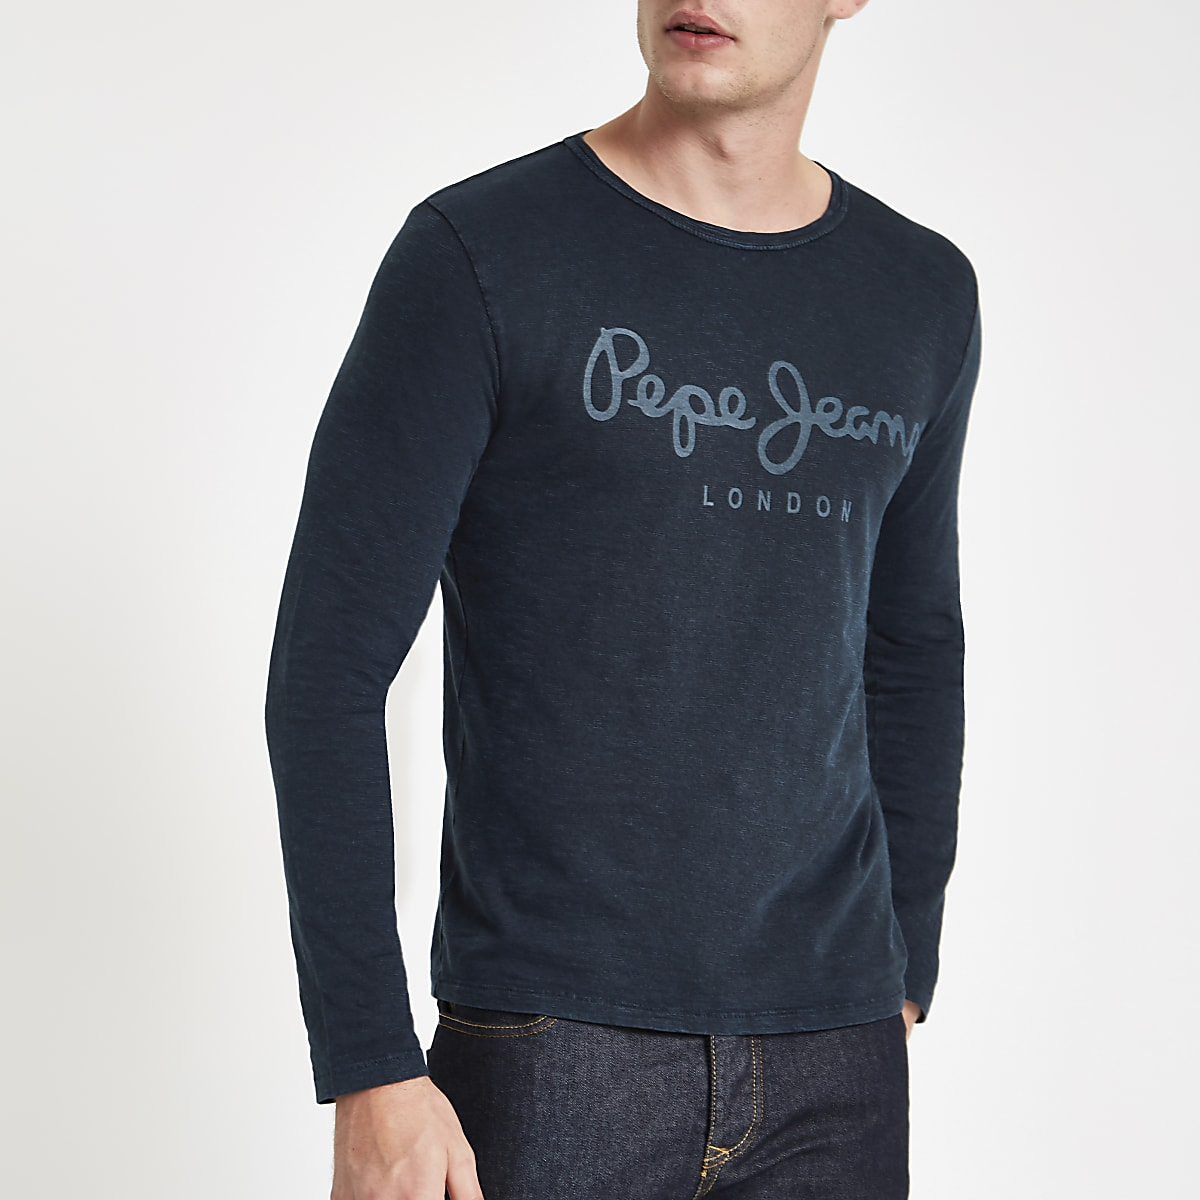 Pepe Jeans blue long sleeve T-shirt